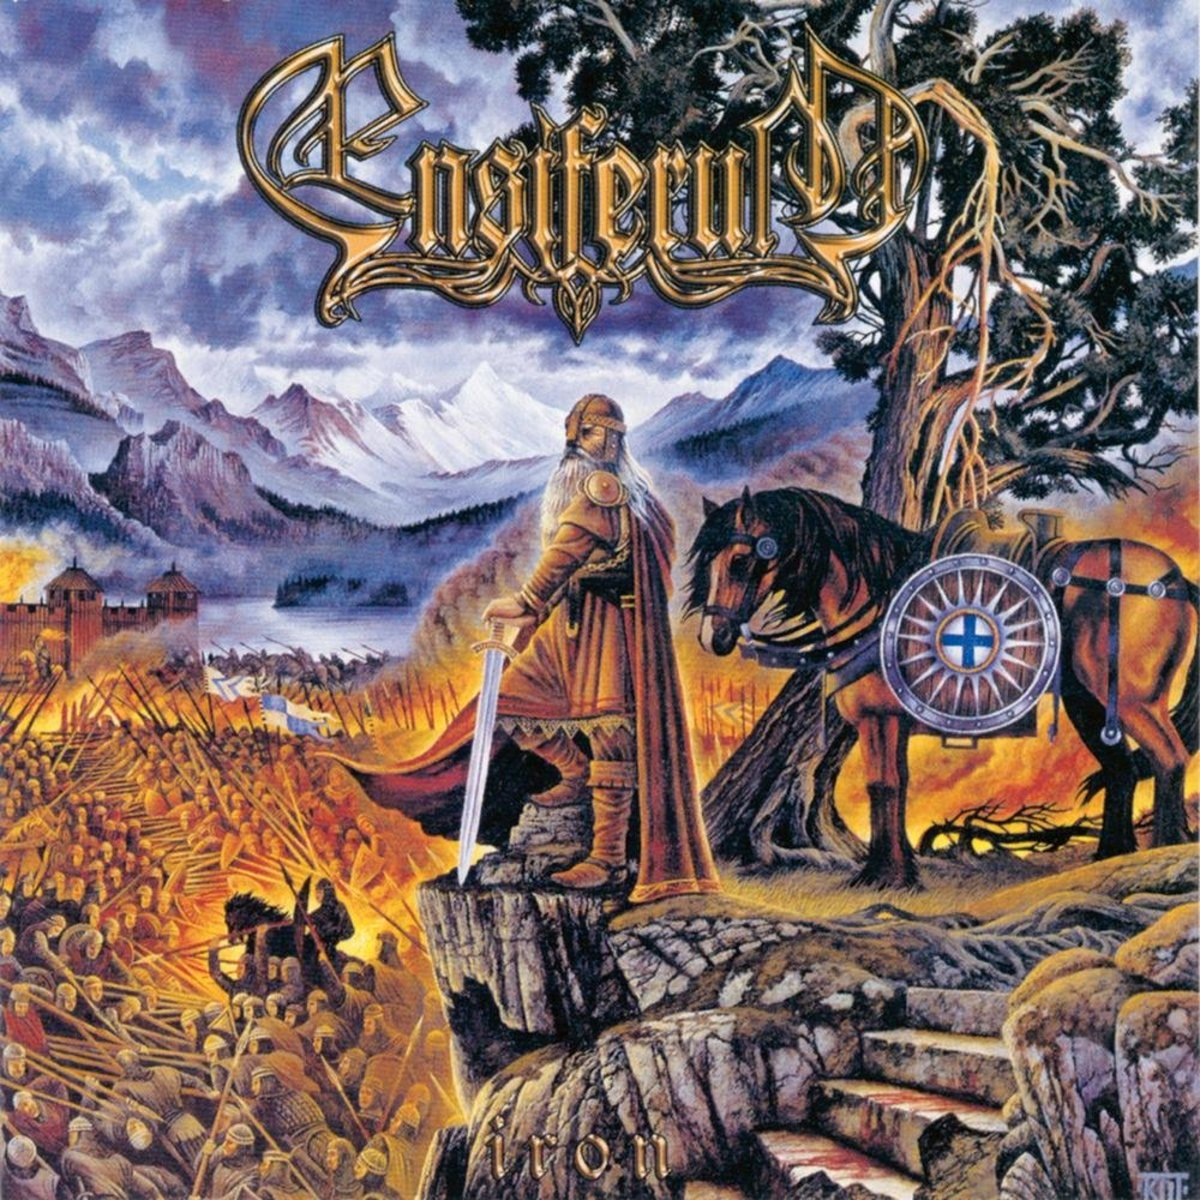 Ensiferum Iron: The Return of Jari Maenpaa